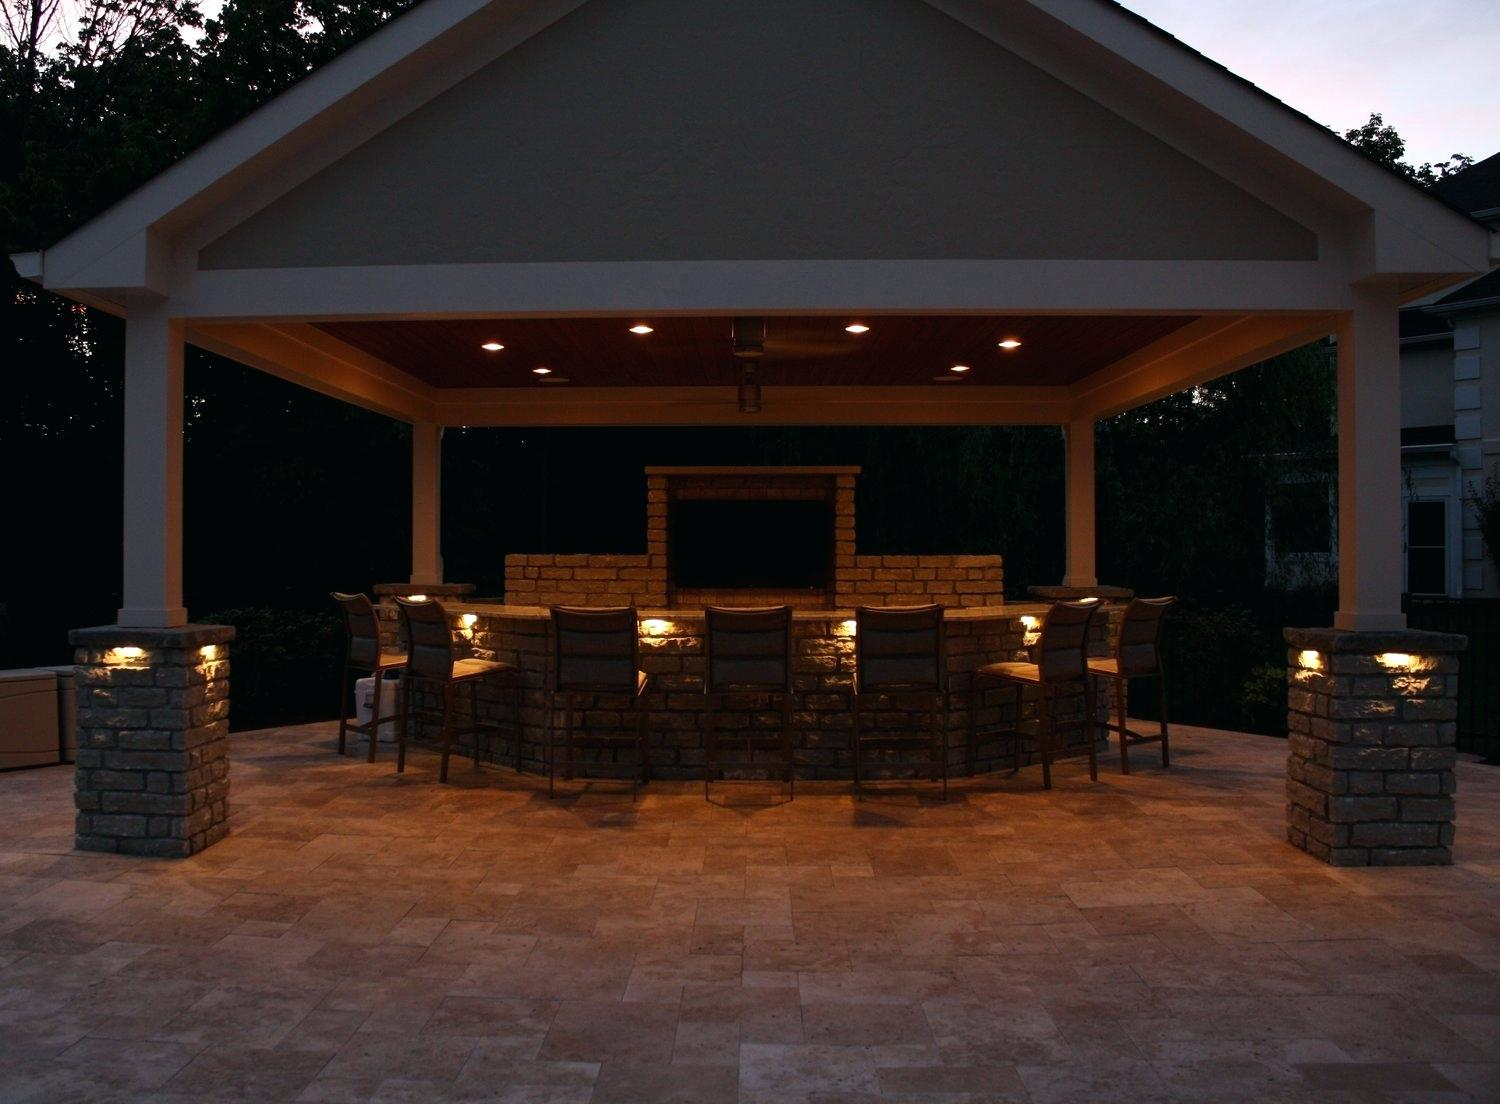 Accent lights-Brandon FL Outdoor Lighting Installers-We Offer Outdoor Lighting Services, Landscape Lighting, Low Voltage Lighting, Outdoor LED landscape Lighting, Holiday Lighting, Christmas Lighting, Tree Lighting, Canopy Lighting, Residential outdoor Lighting, Commercial outdoor Lighting, Safety Lighting, Path and Garden Lighting, Mini lights and flood lights, Landscape Lighting installation, Outdoor spot lights, Outdoor LED garden Lighting, Dock Lighting, Accent lights, Deck and patio lights, Security lights, Underwater Lighting, Tree upLighting, Outdoor Lighting repair services, and more.